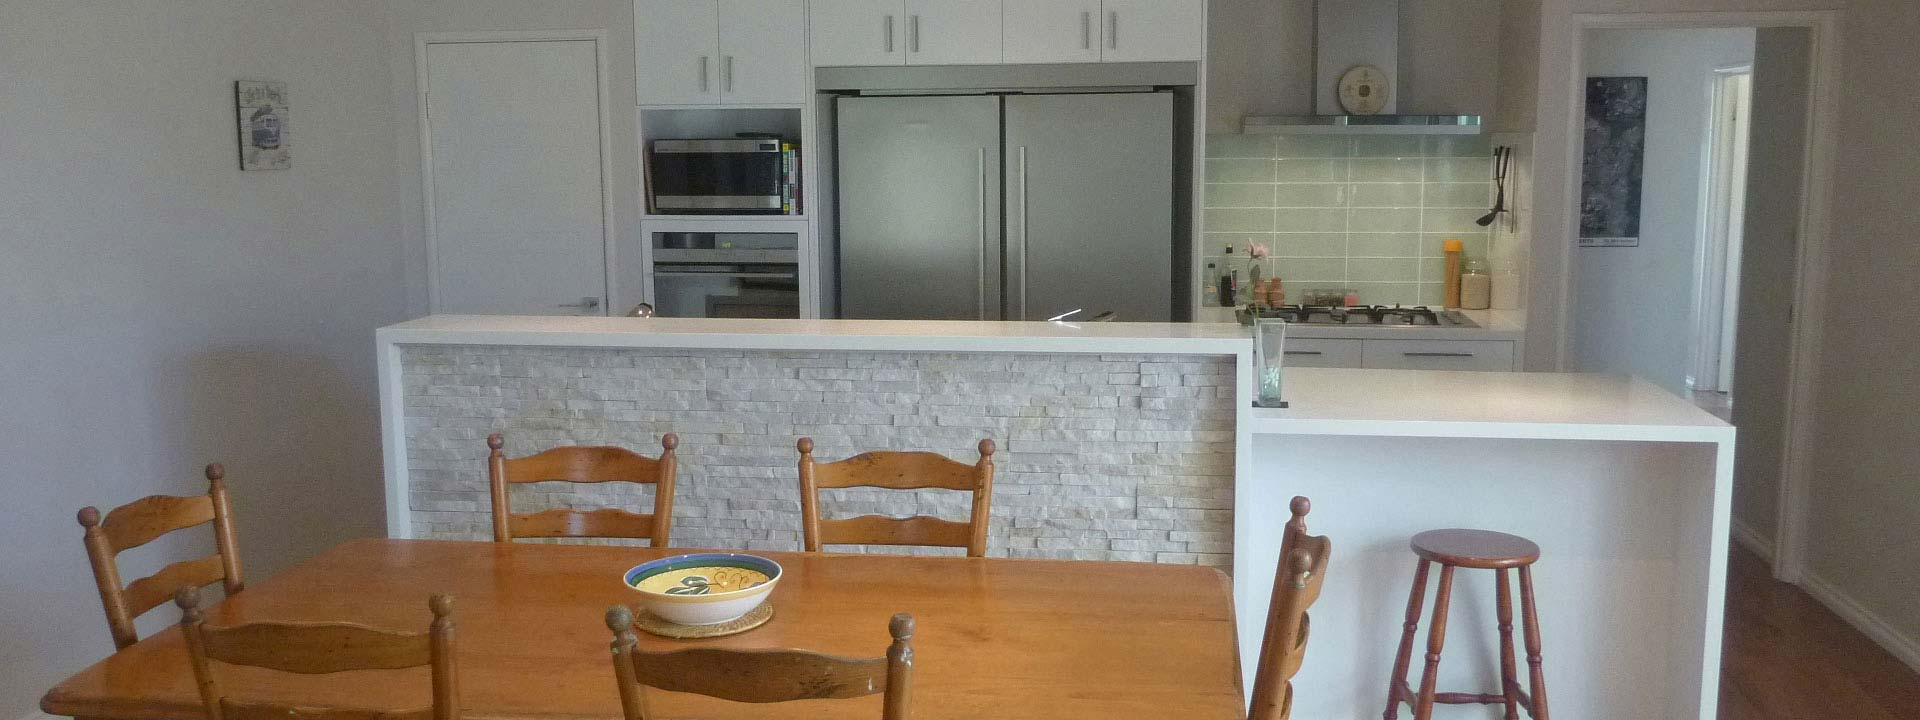 Stay at Perth's best value, premium house rental at Ocean Keys Cottage